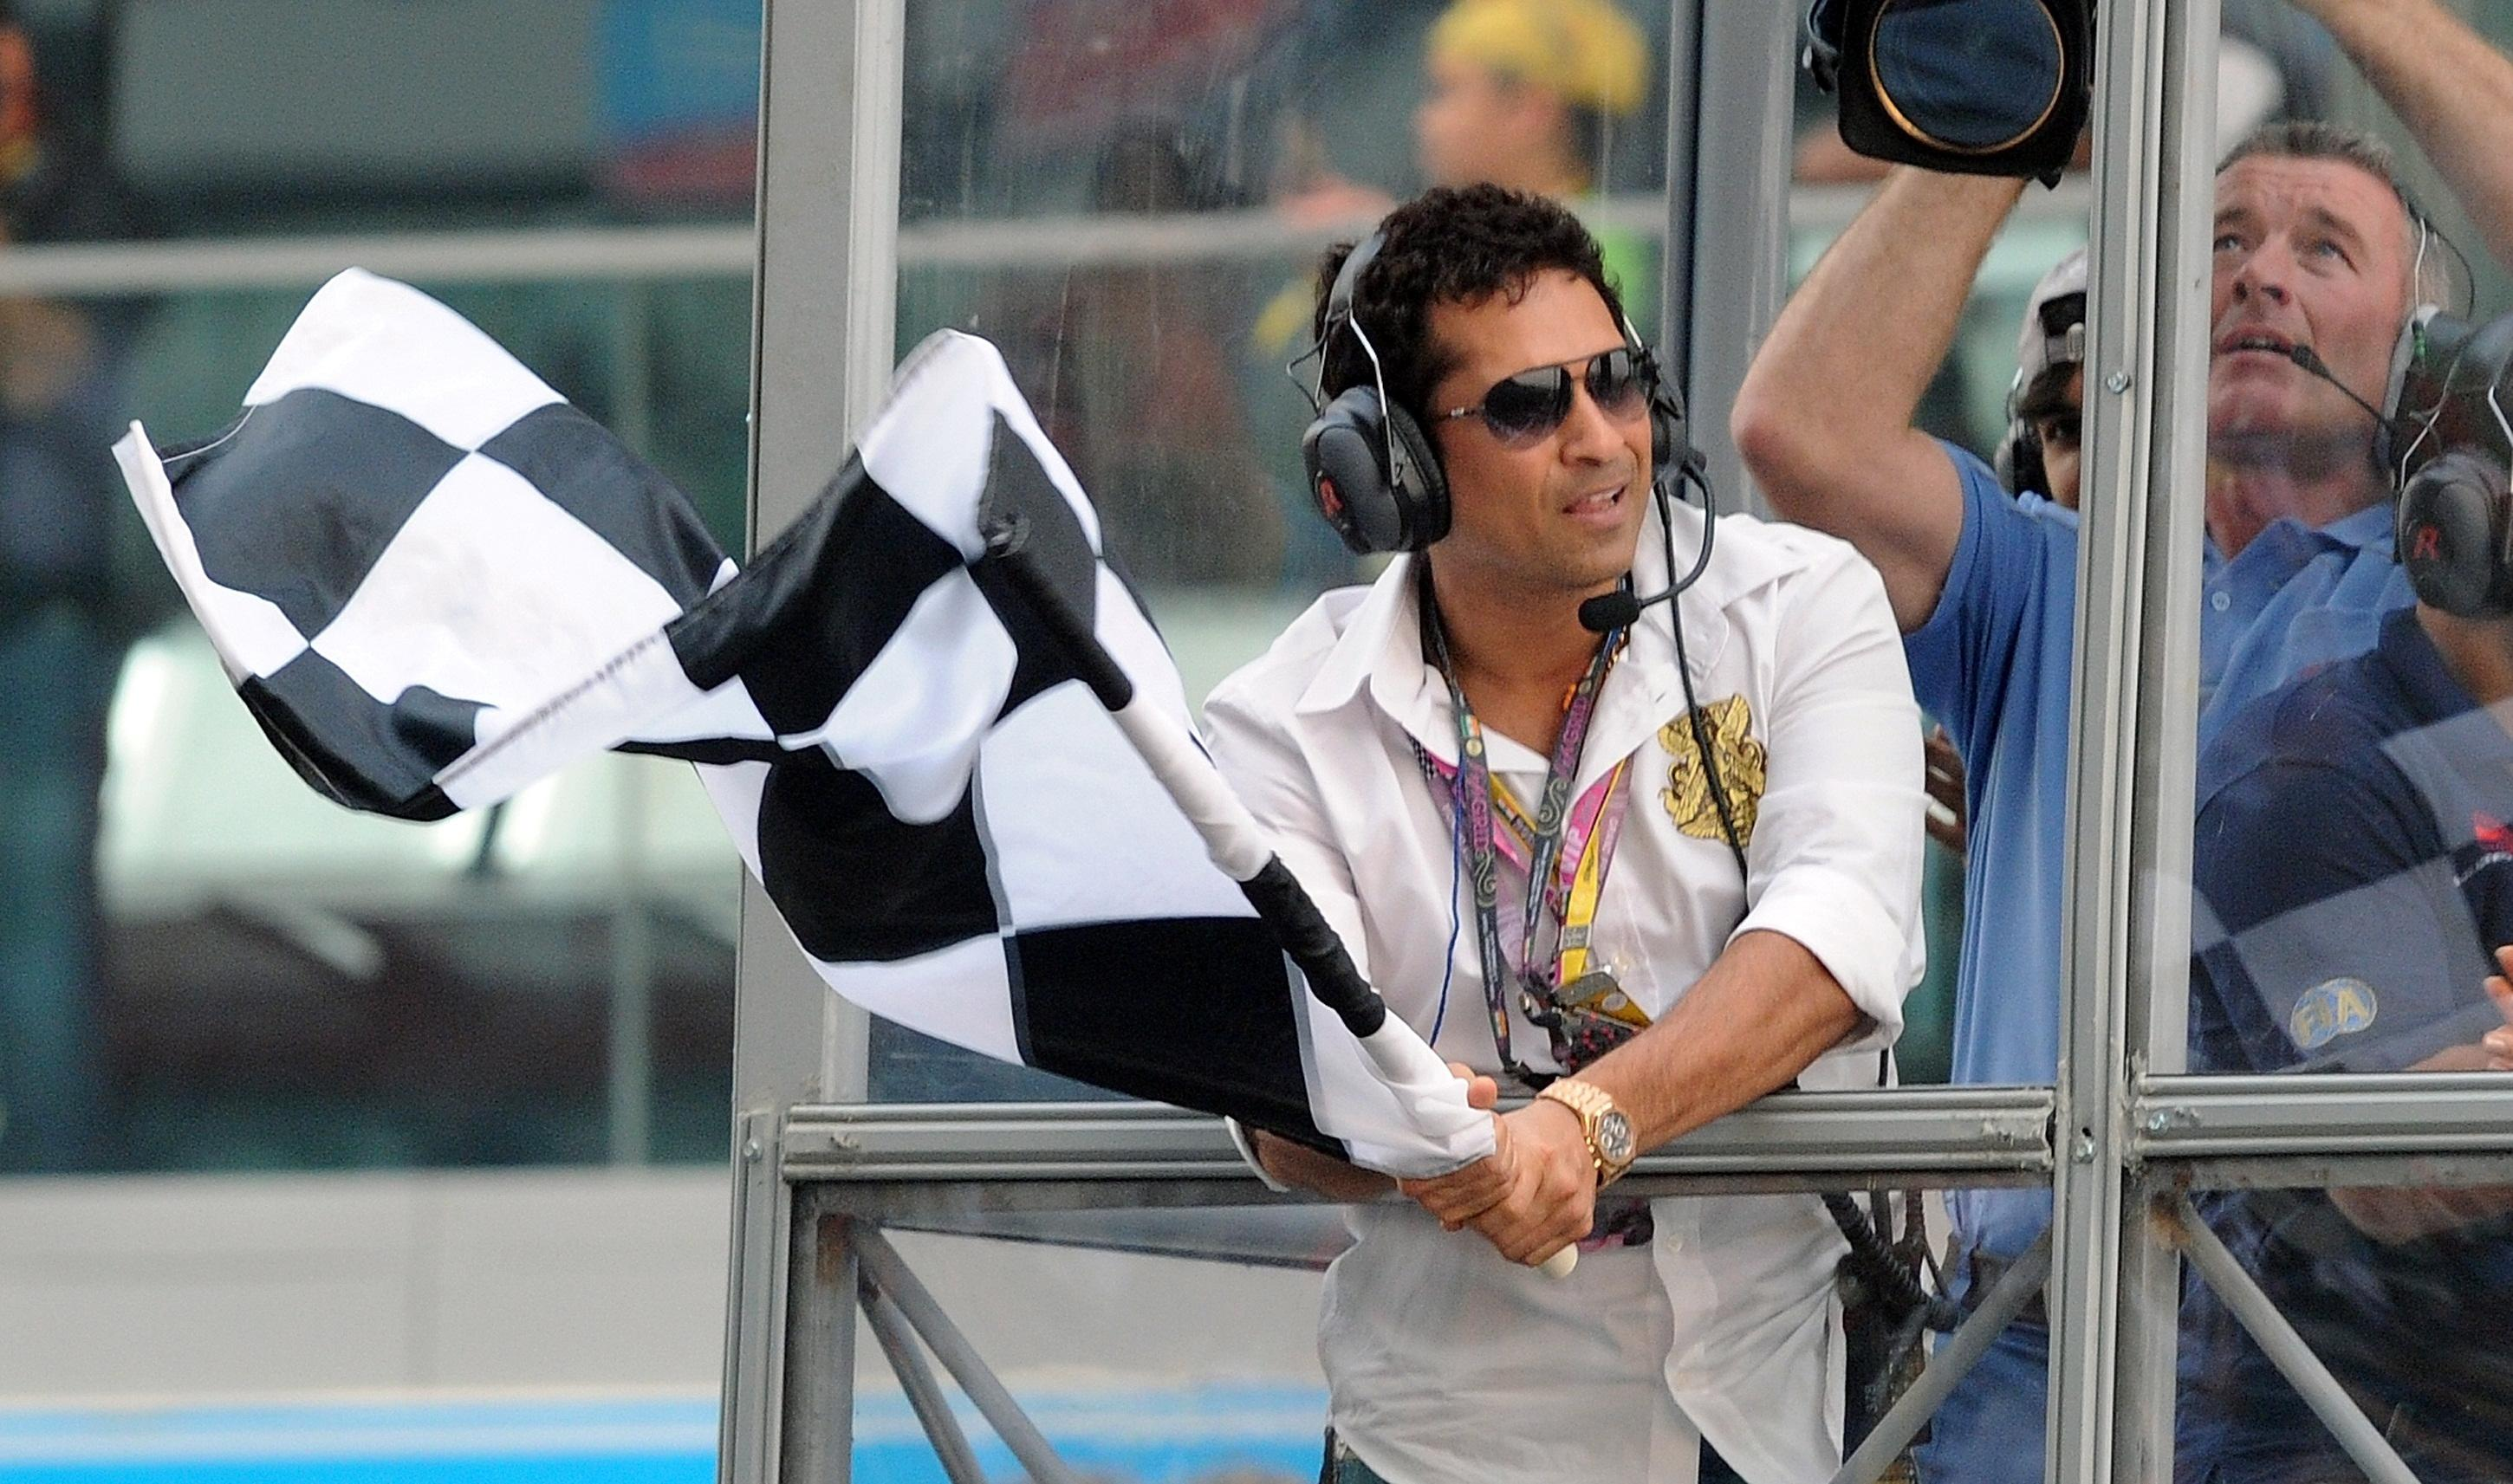 Cricket legend Sachin Tendulkar waved the chequered flag at the end of the inaugural Indian Grand Prix in 2011